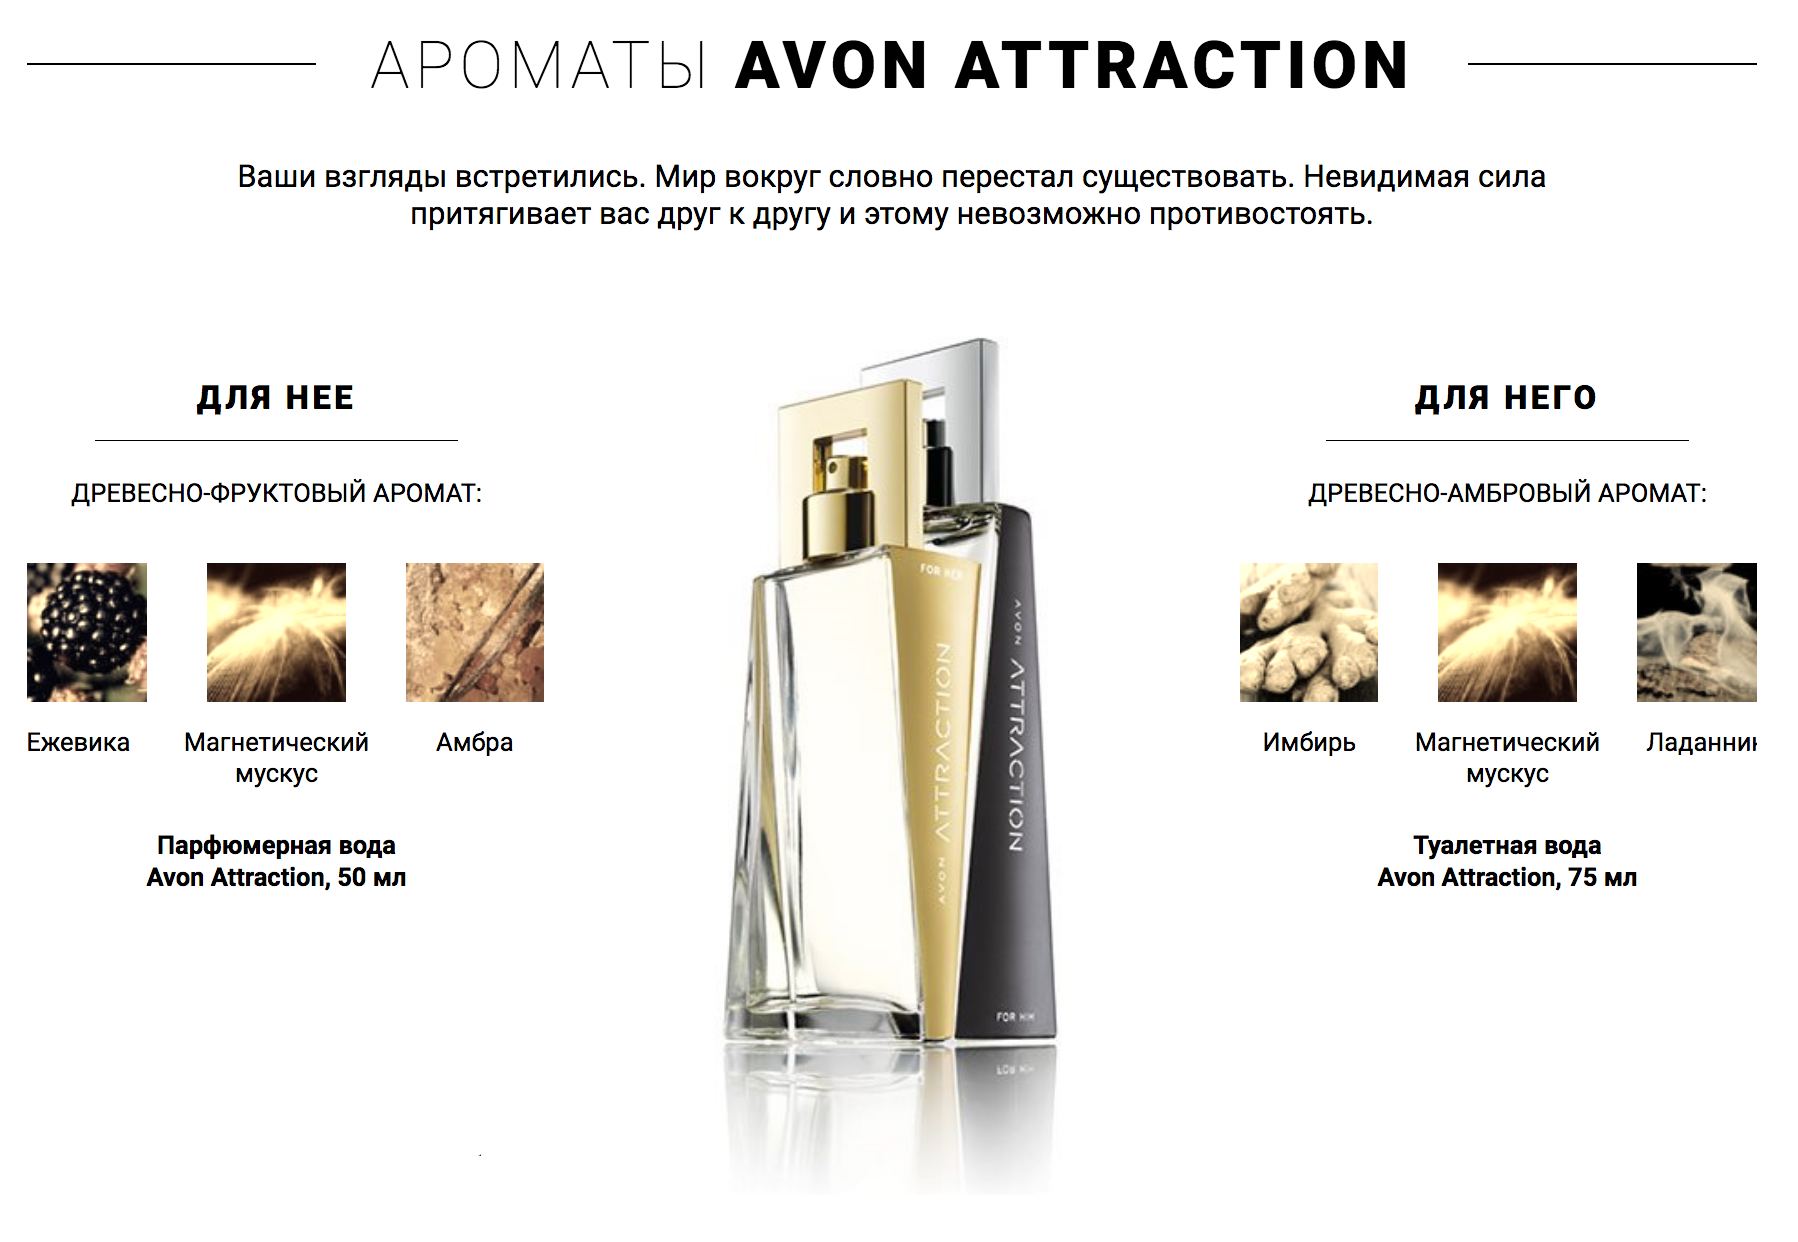 АРОМАТ AVON ATTRACTION